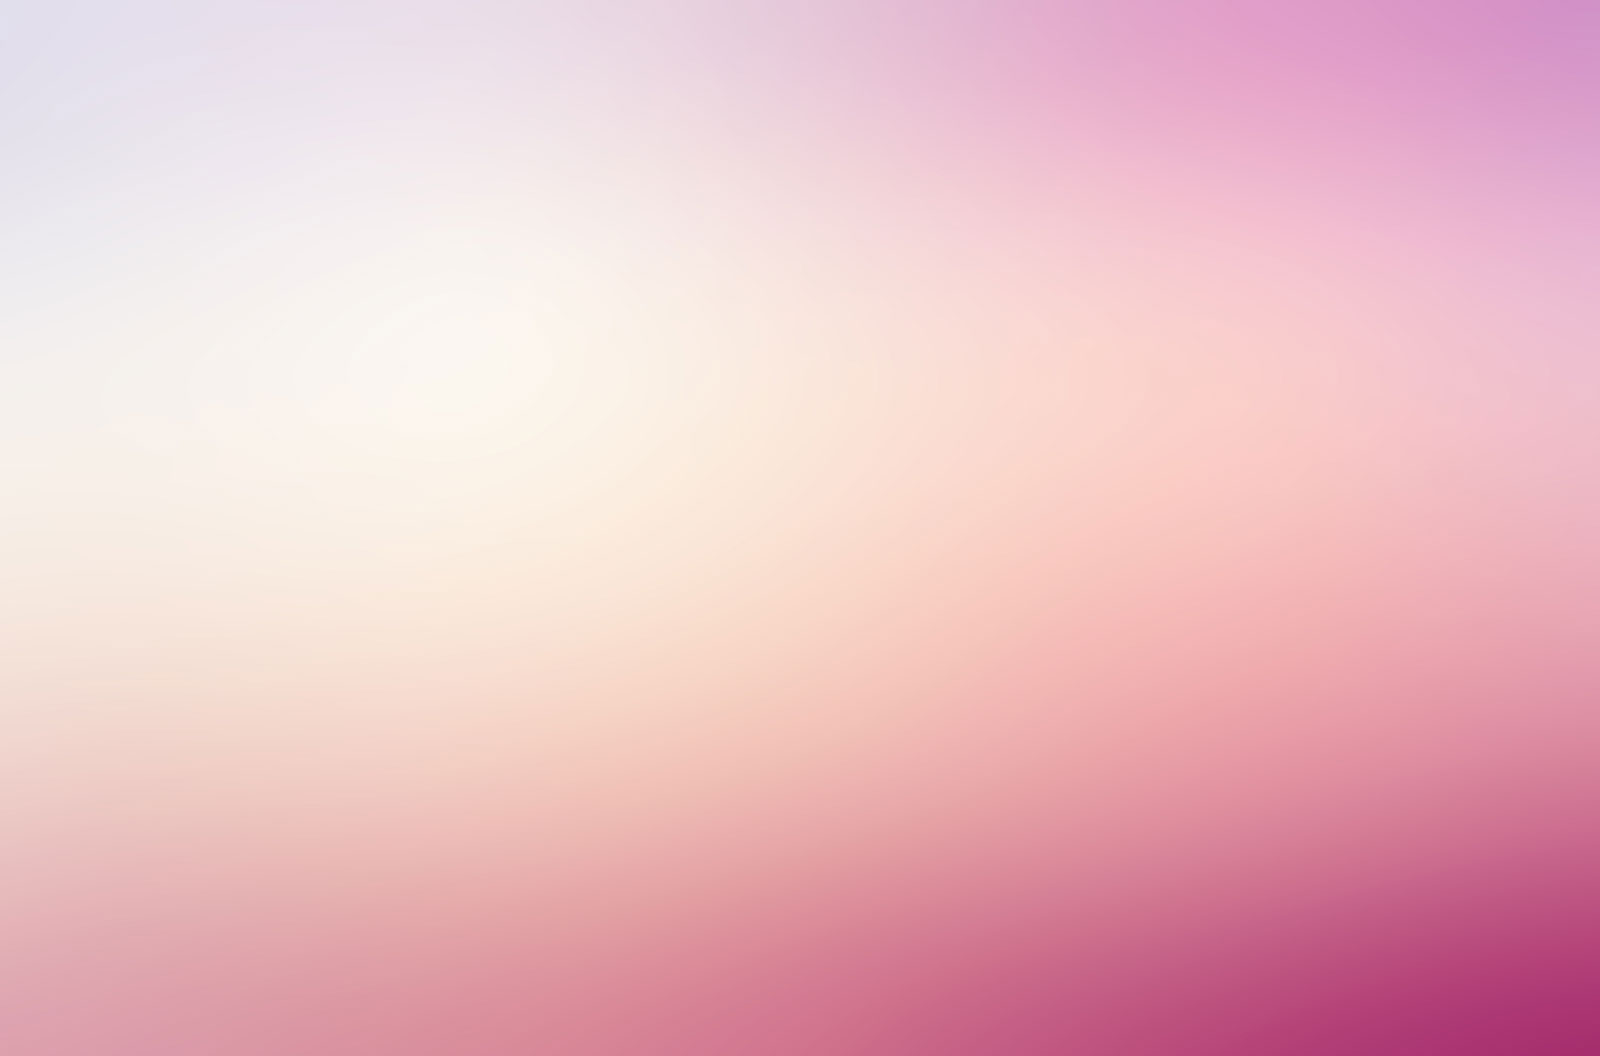 Abstract rose quartz, pink fusia color-blended background